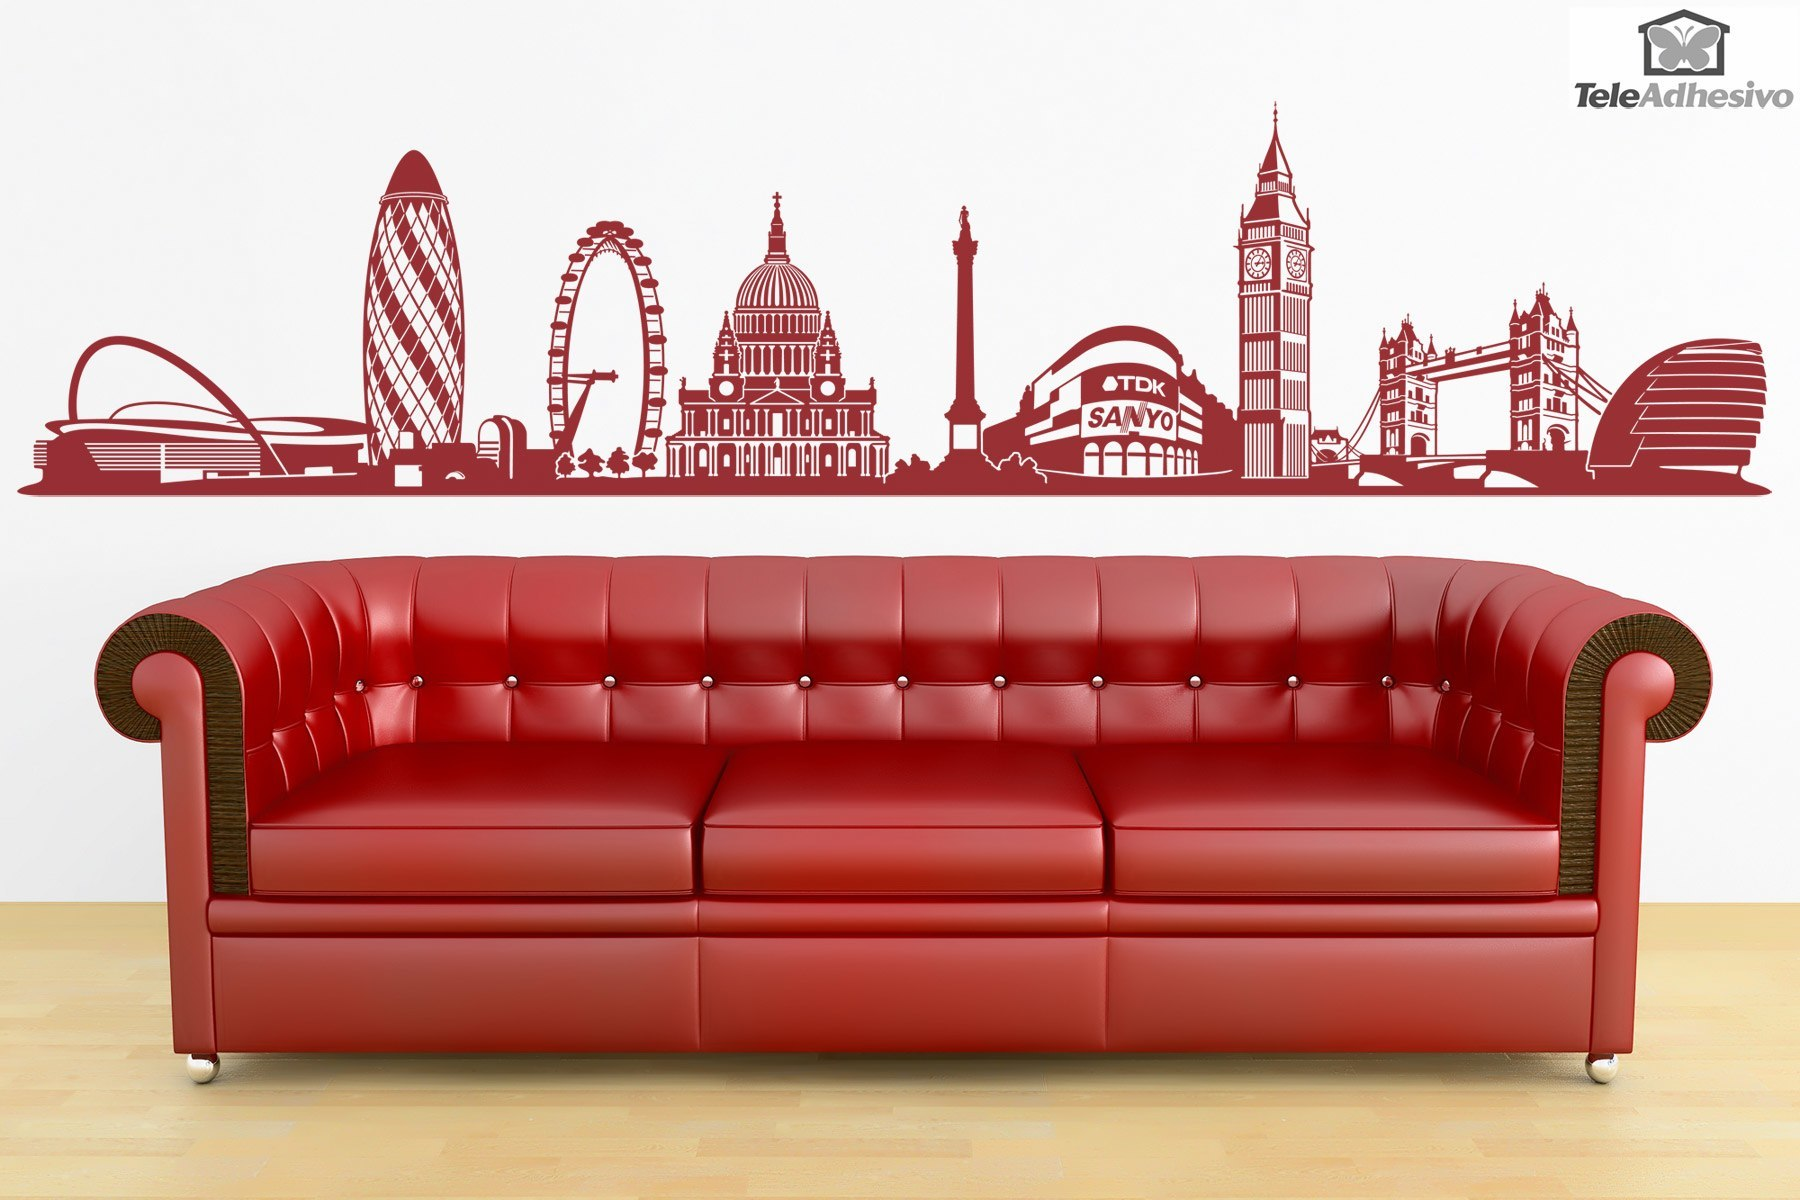 wandtattoo skyline von london. Black Bedroom Furniture Sets. Home Design Ideas